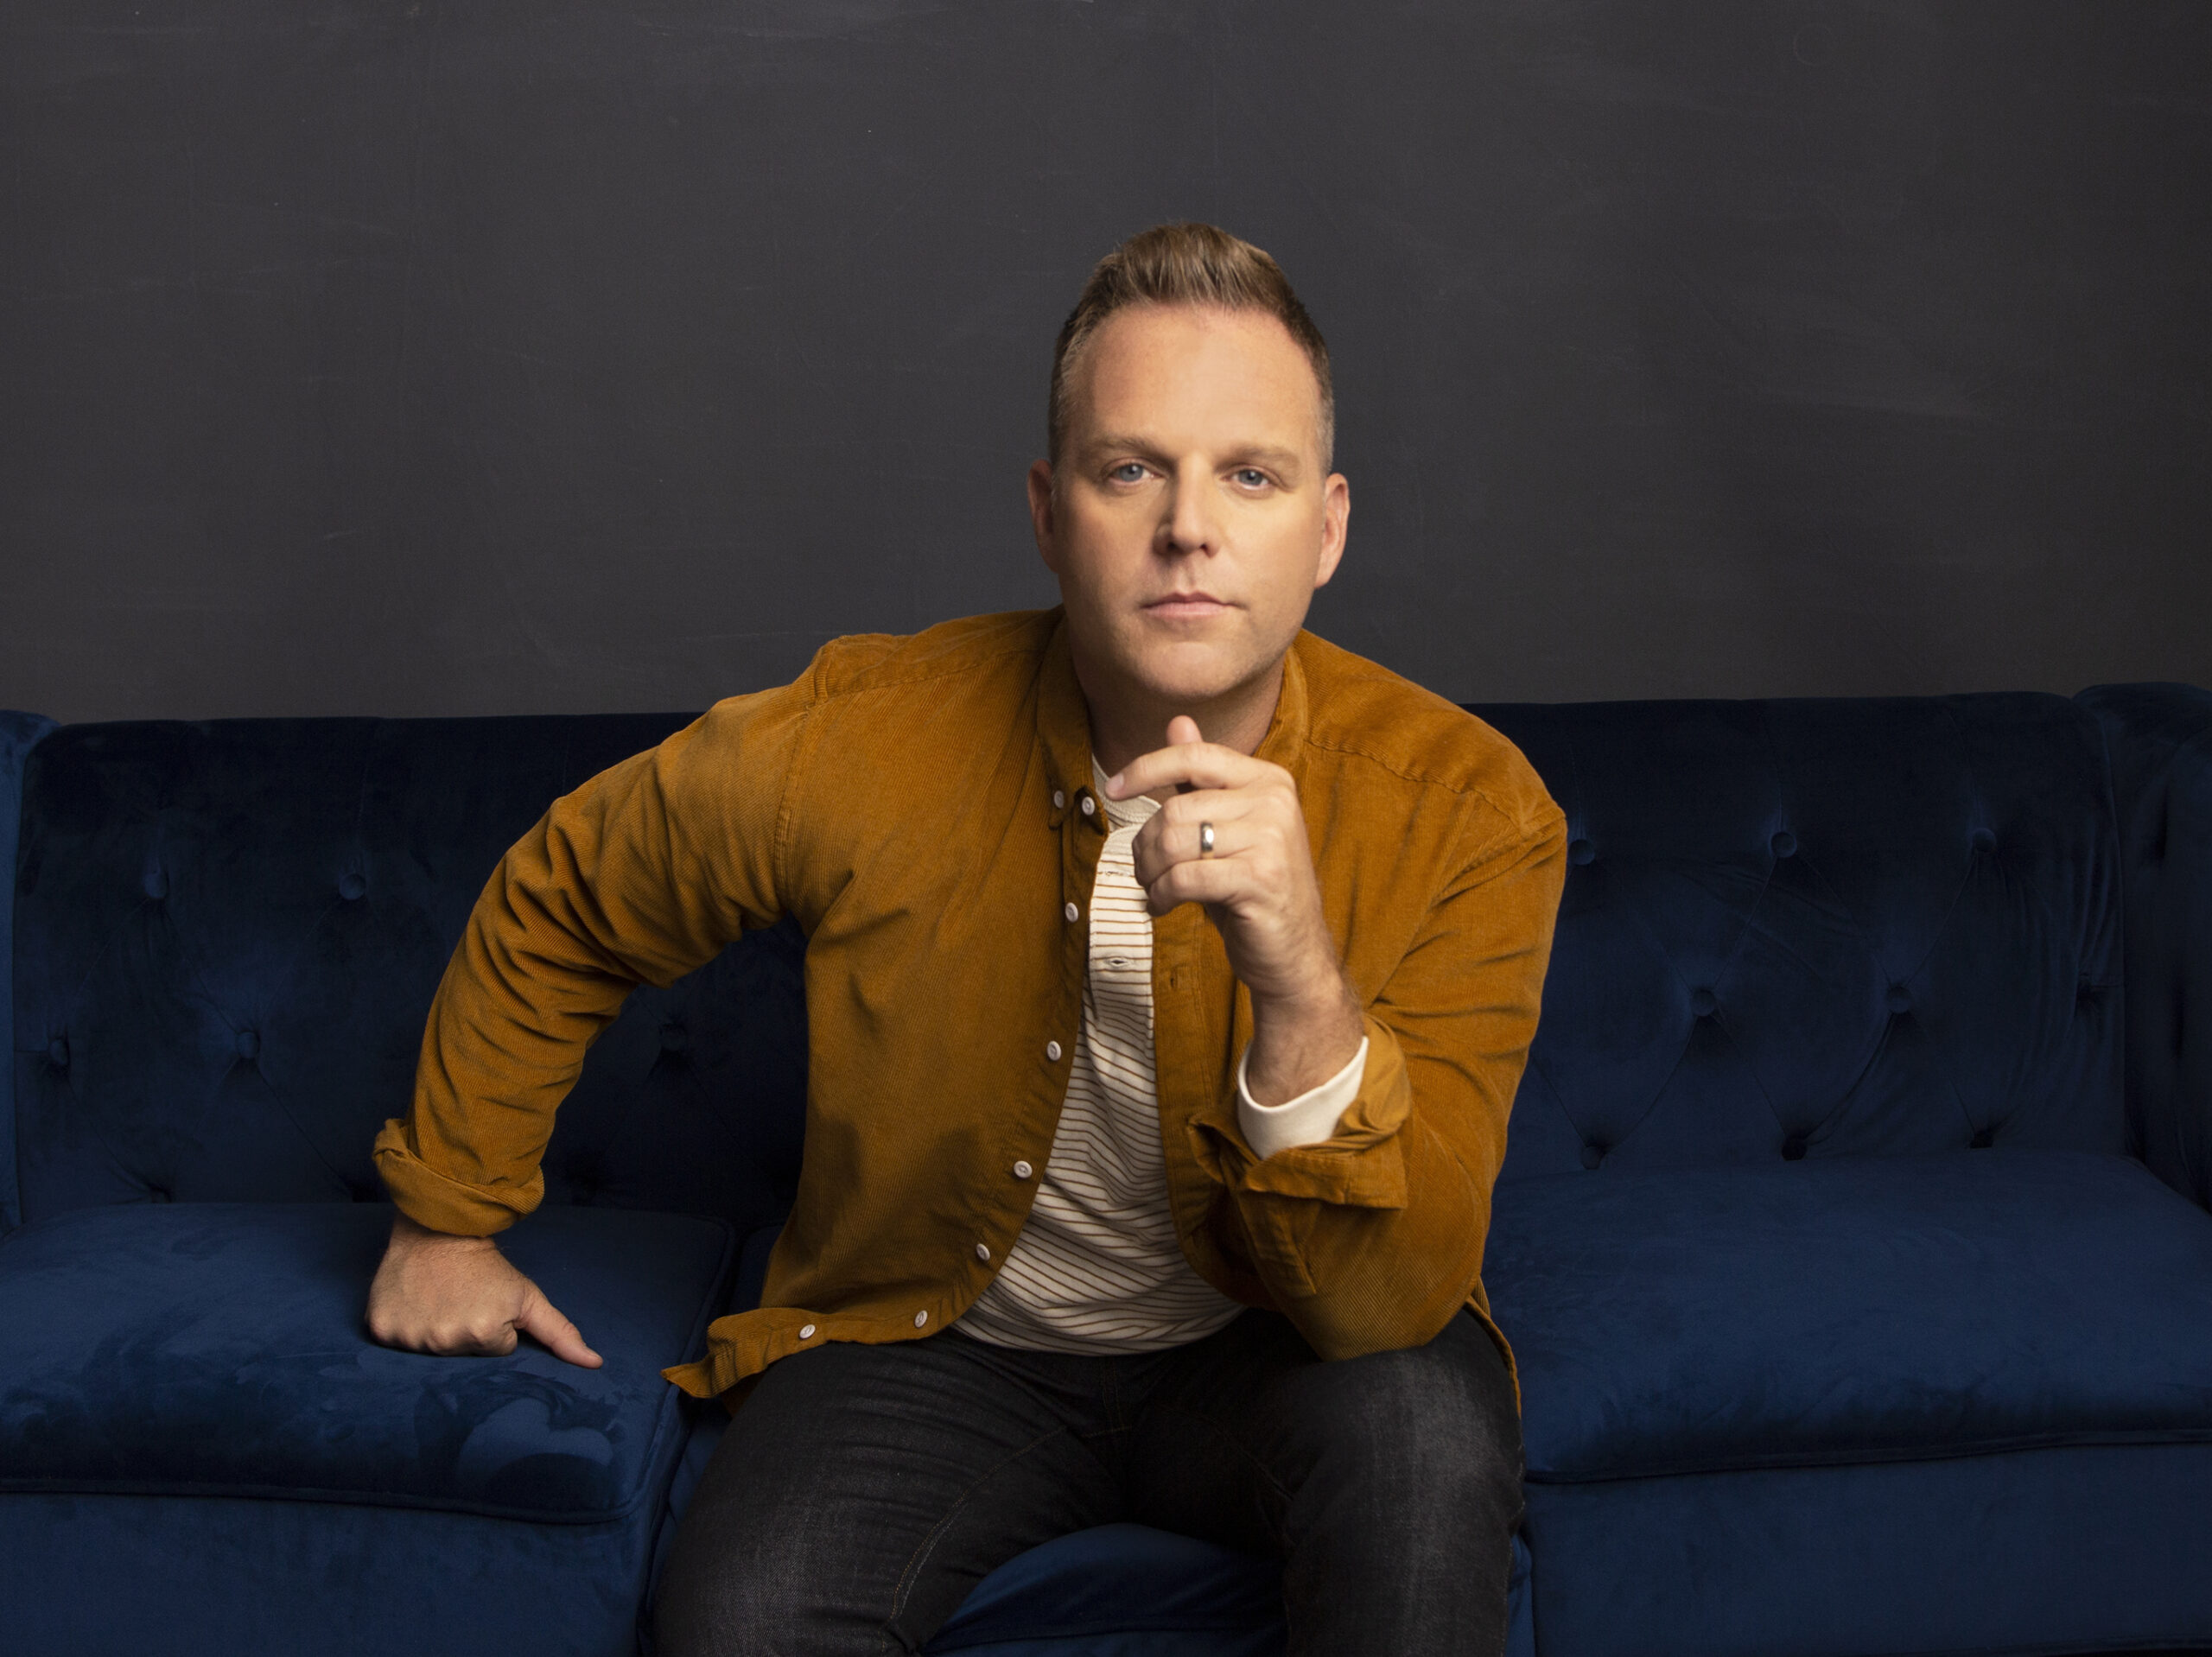 Matthew West sits on a blue couch. He leans forward, with one hand up towards his chin and is dressed in a mustard-colored jacket and white tshirt.